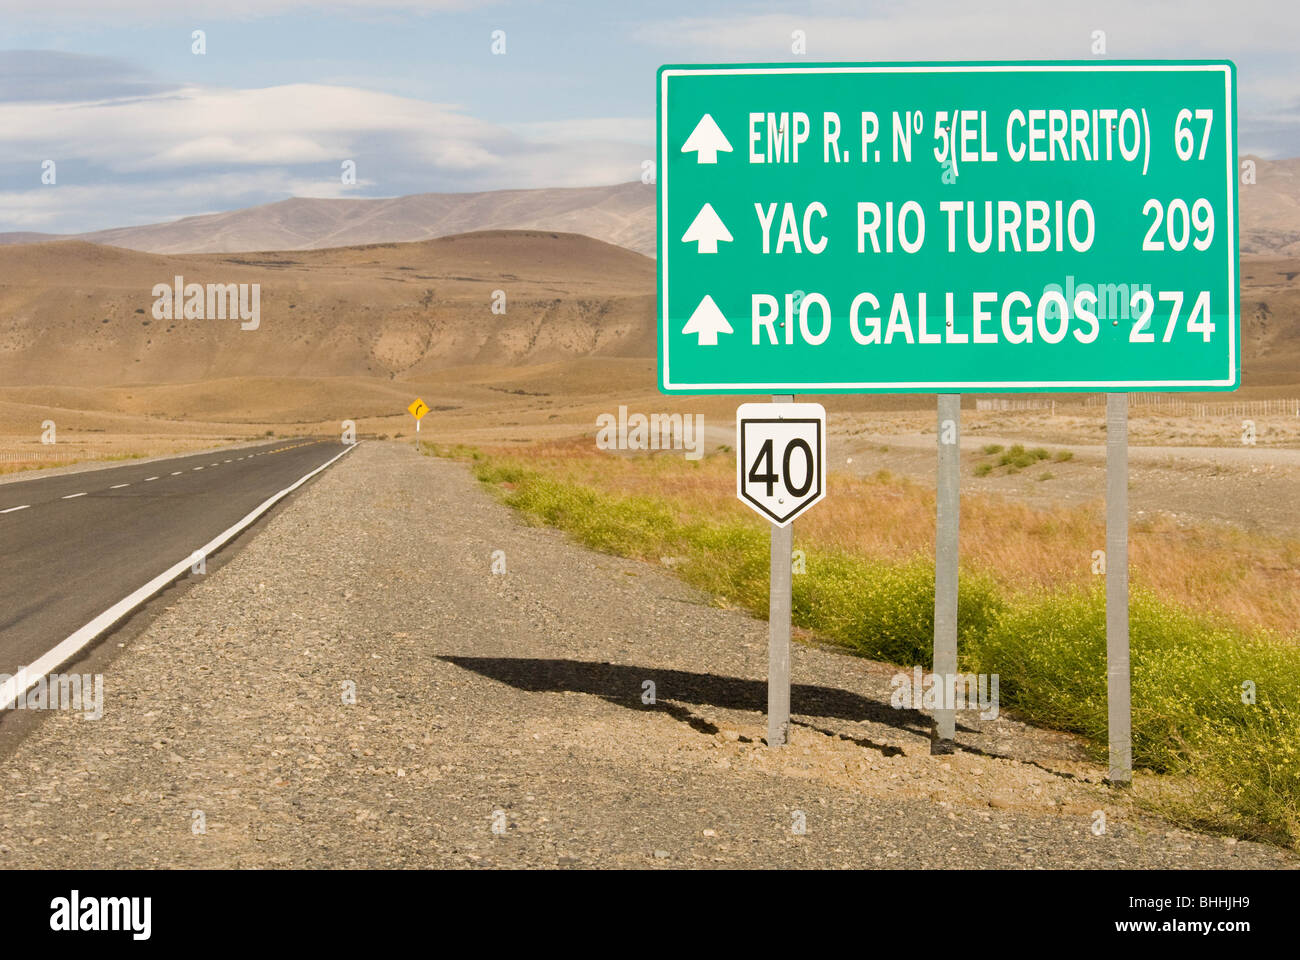 Ruta 40 southern Patagonia Argentina. The longest highway in Argentina, runs the length of the country. - Stock Image